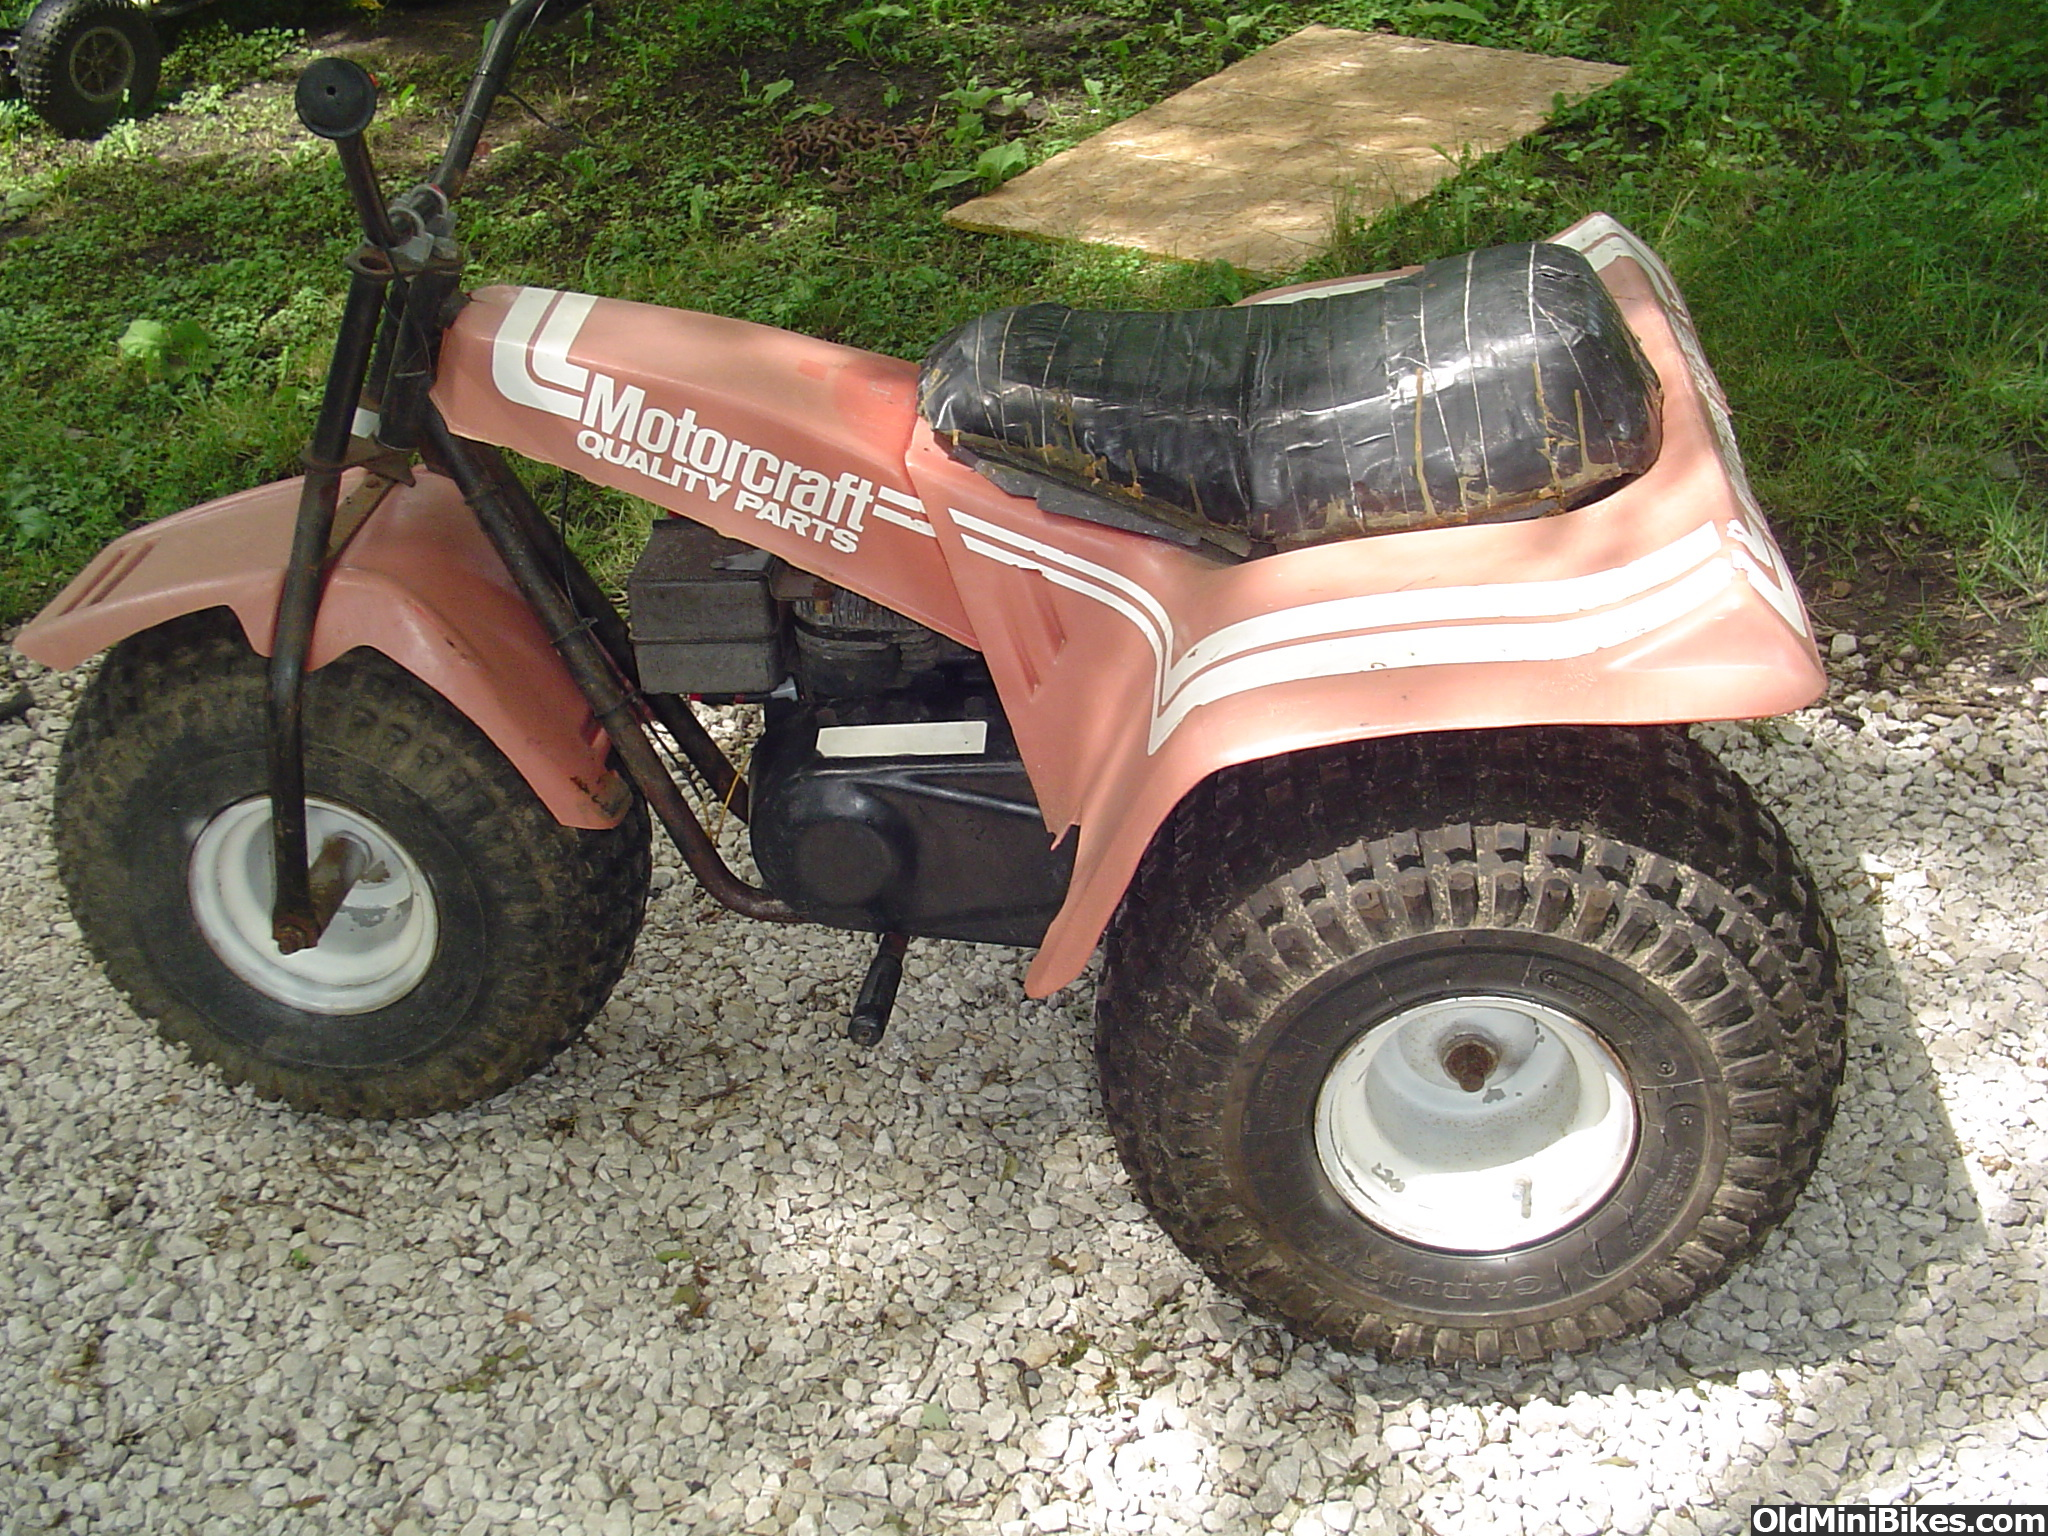 3 Wheel Mini Bike : Bought a wheeler today what is it